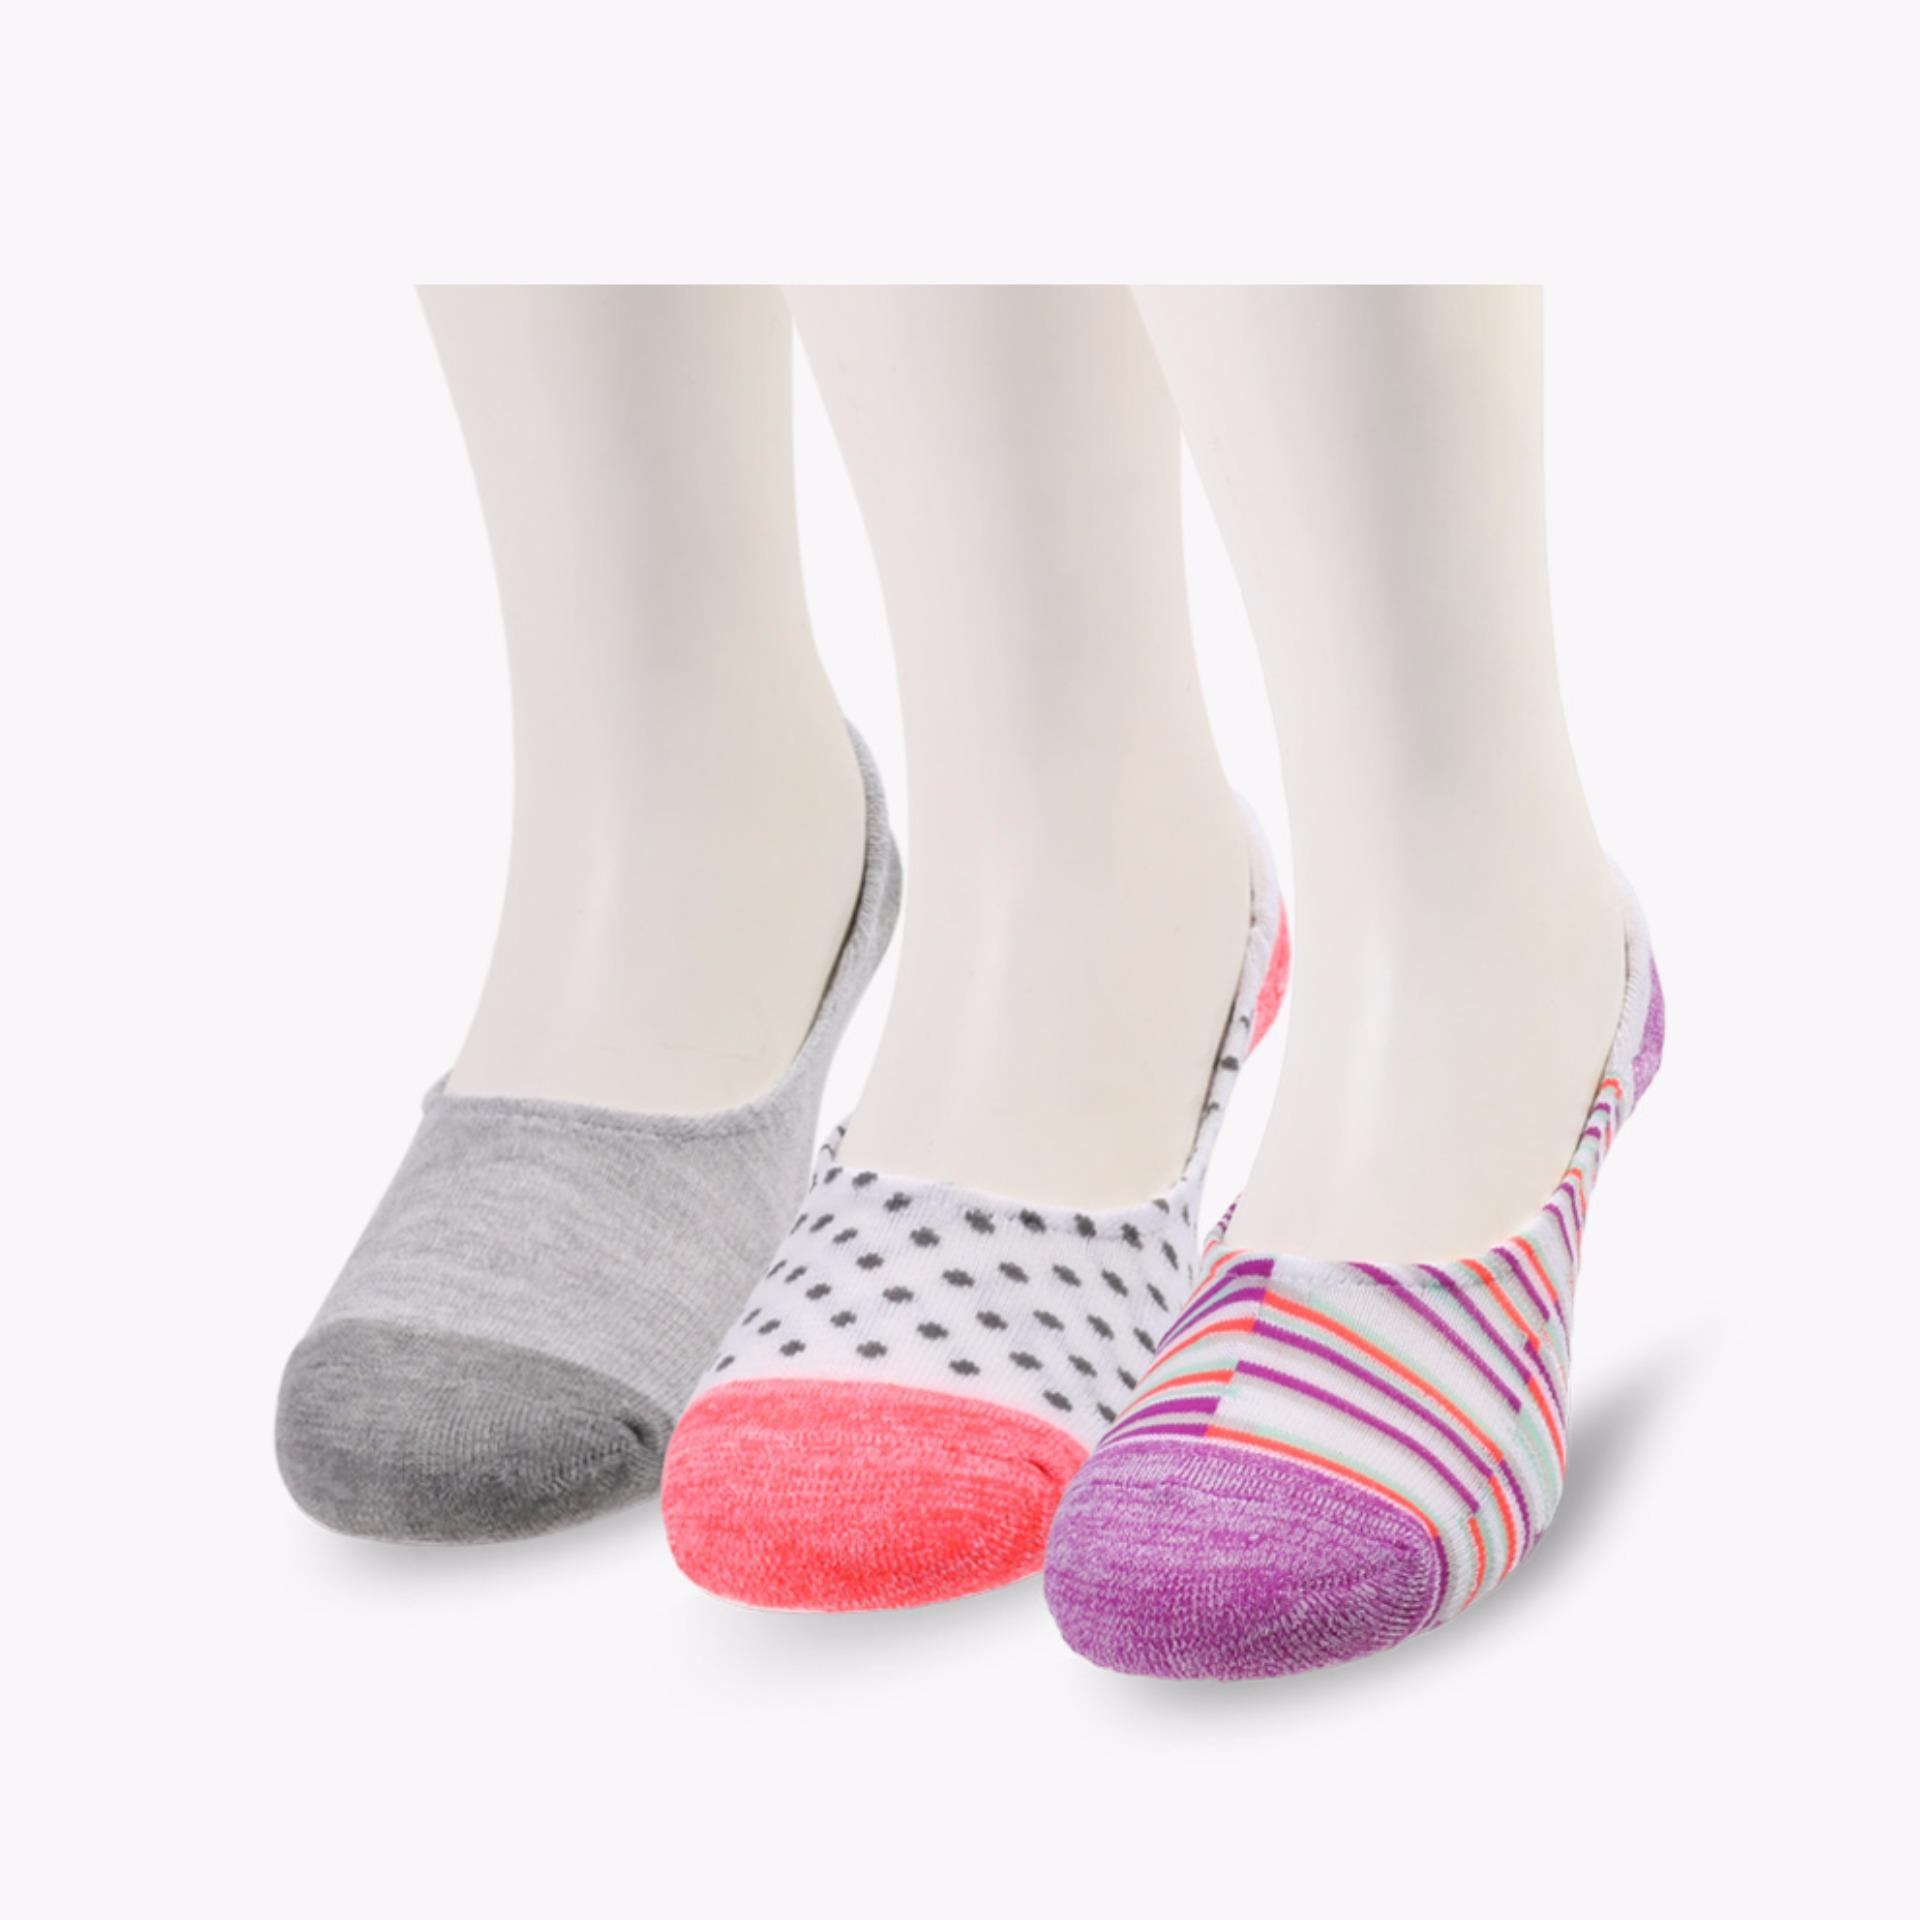 Jual Skechers Relaxed Fit Expected Gomel Women S Socks Multicolor Lengkap